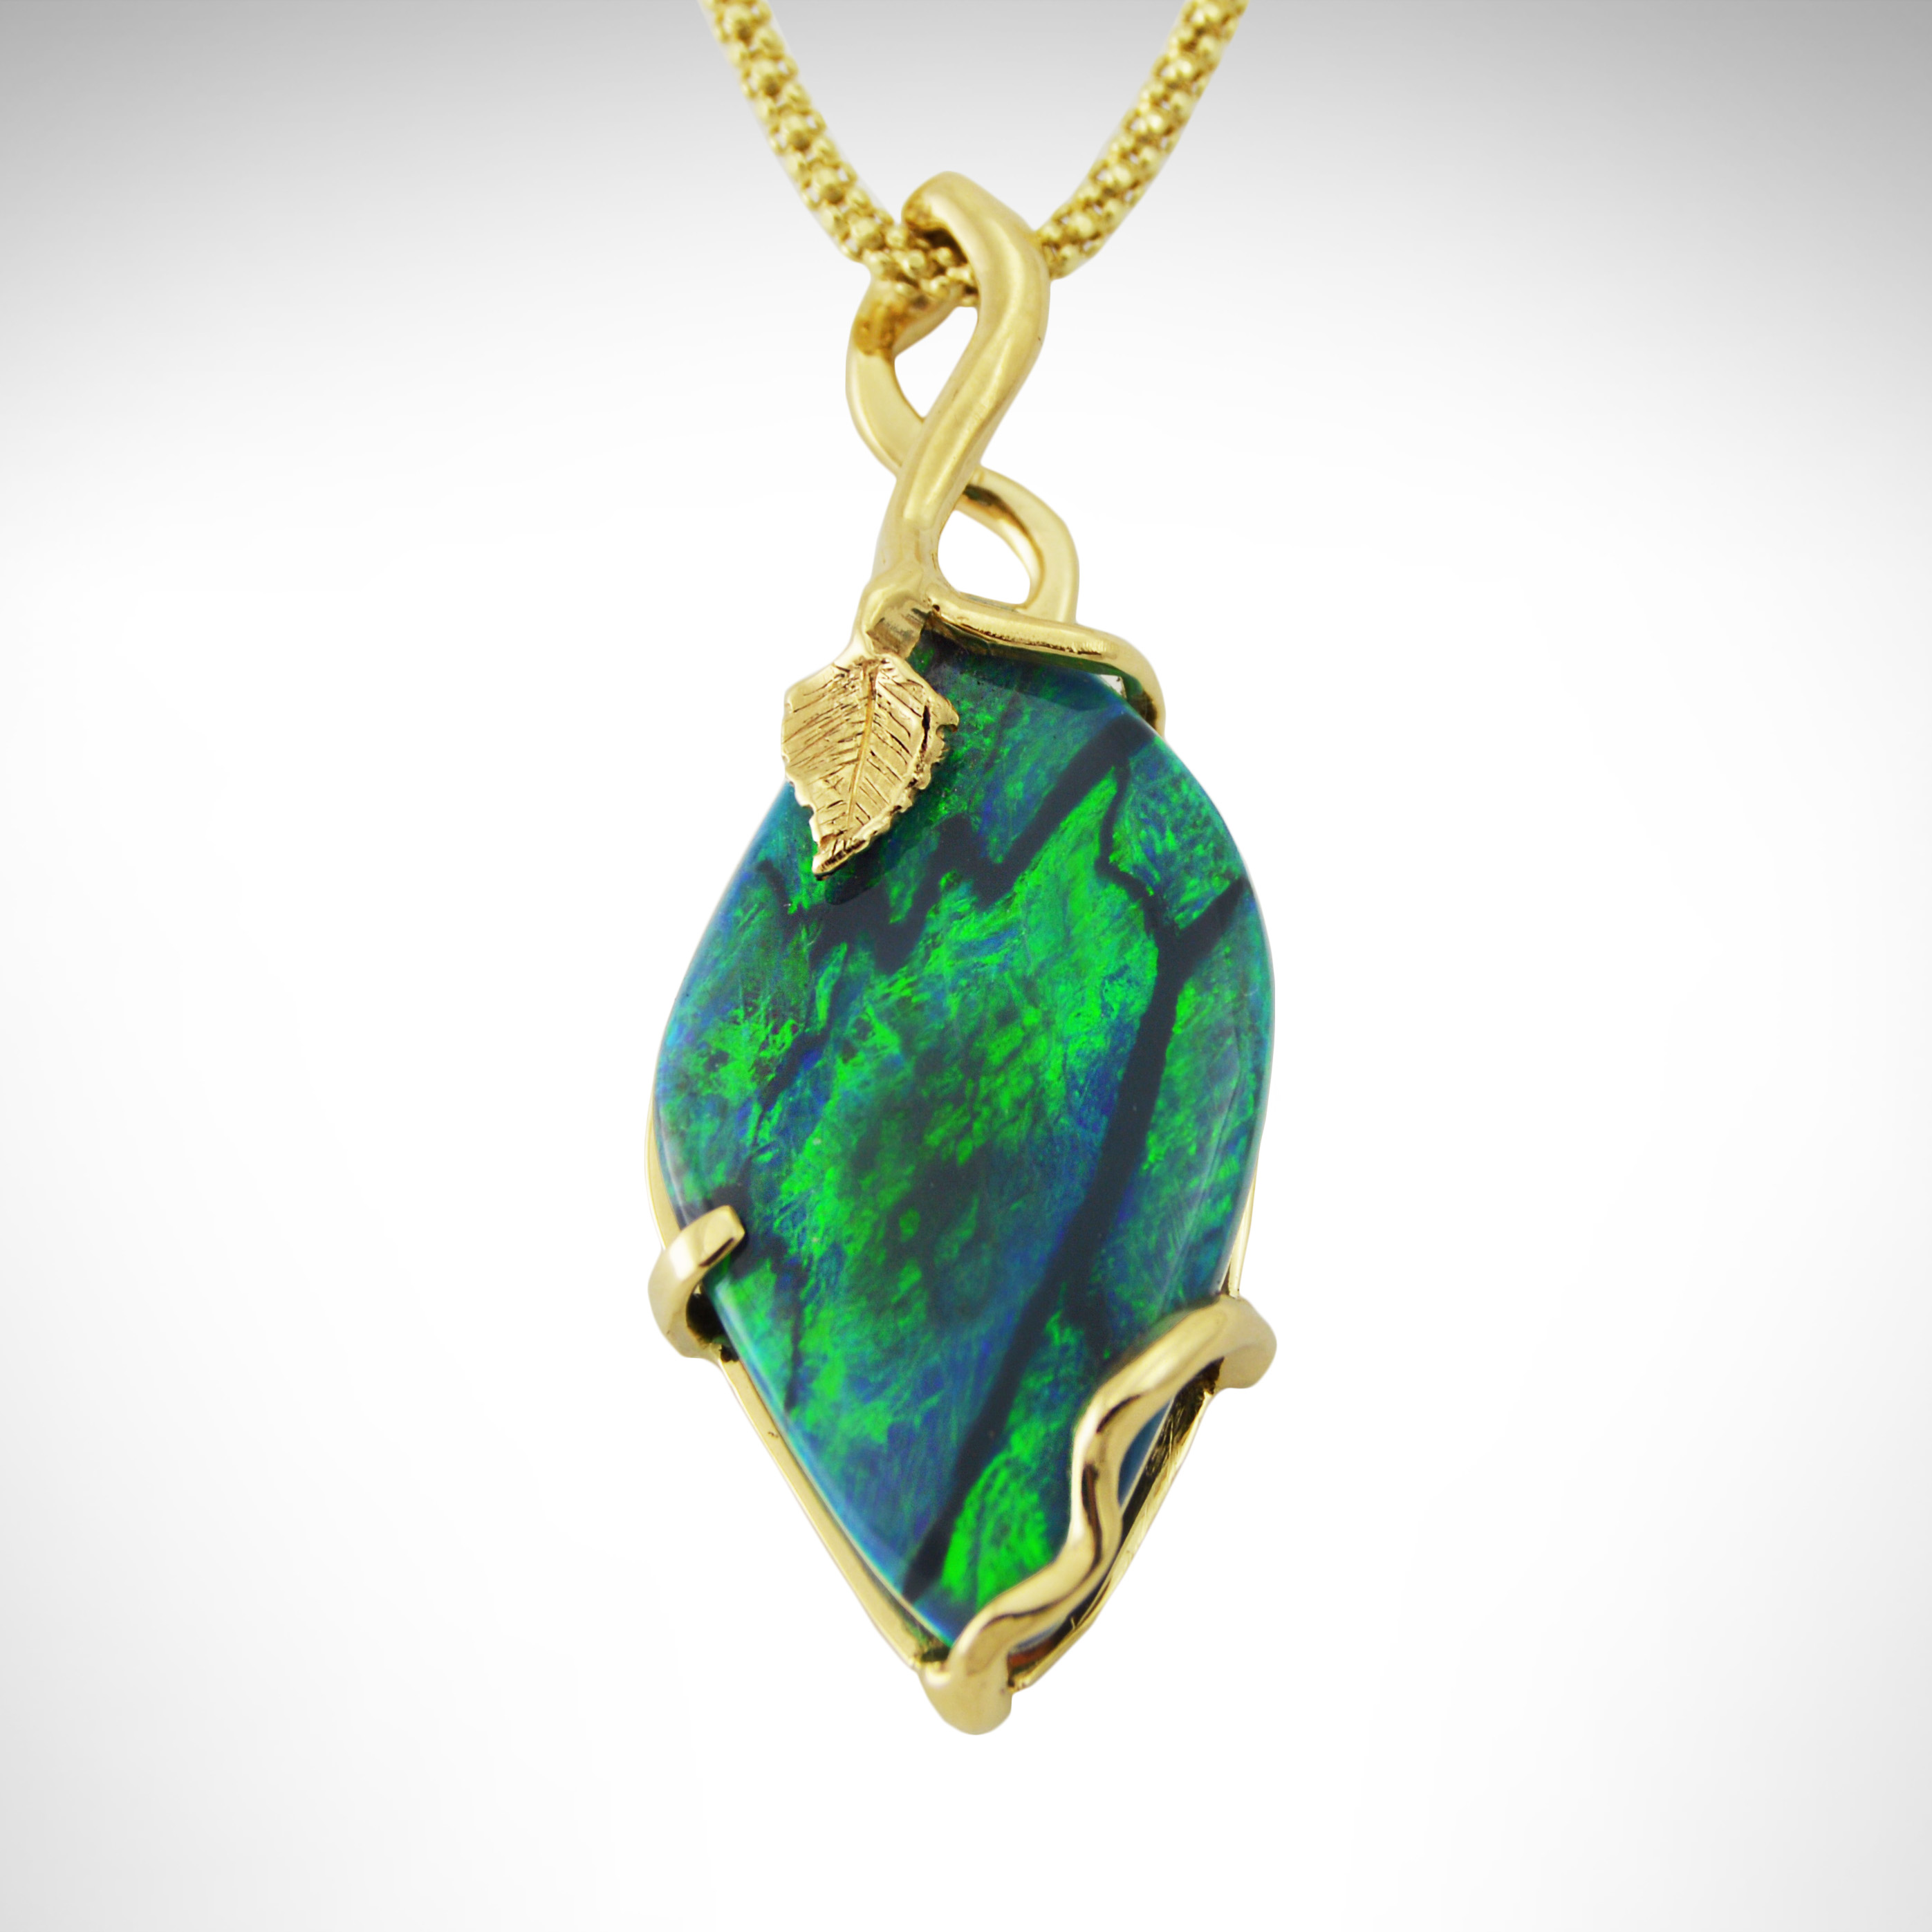 pendant shaped diamond international pear opal shop bail real pearls in gold with